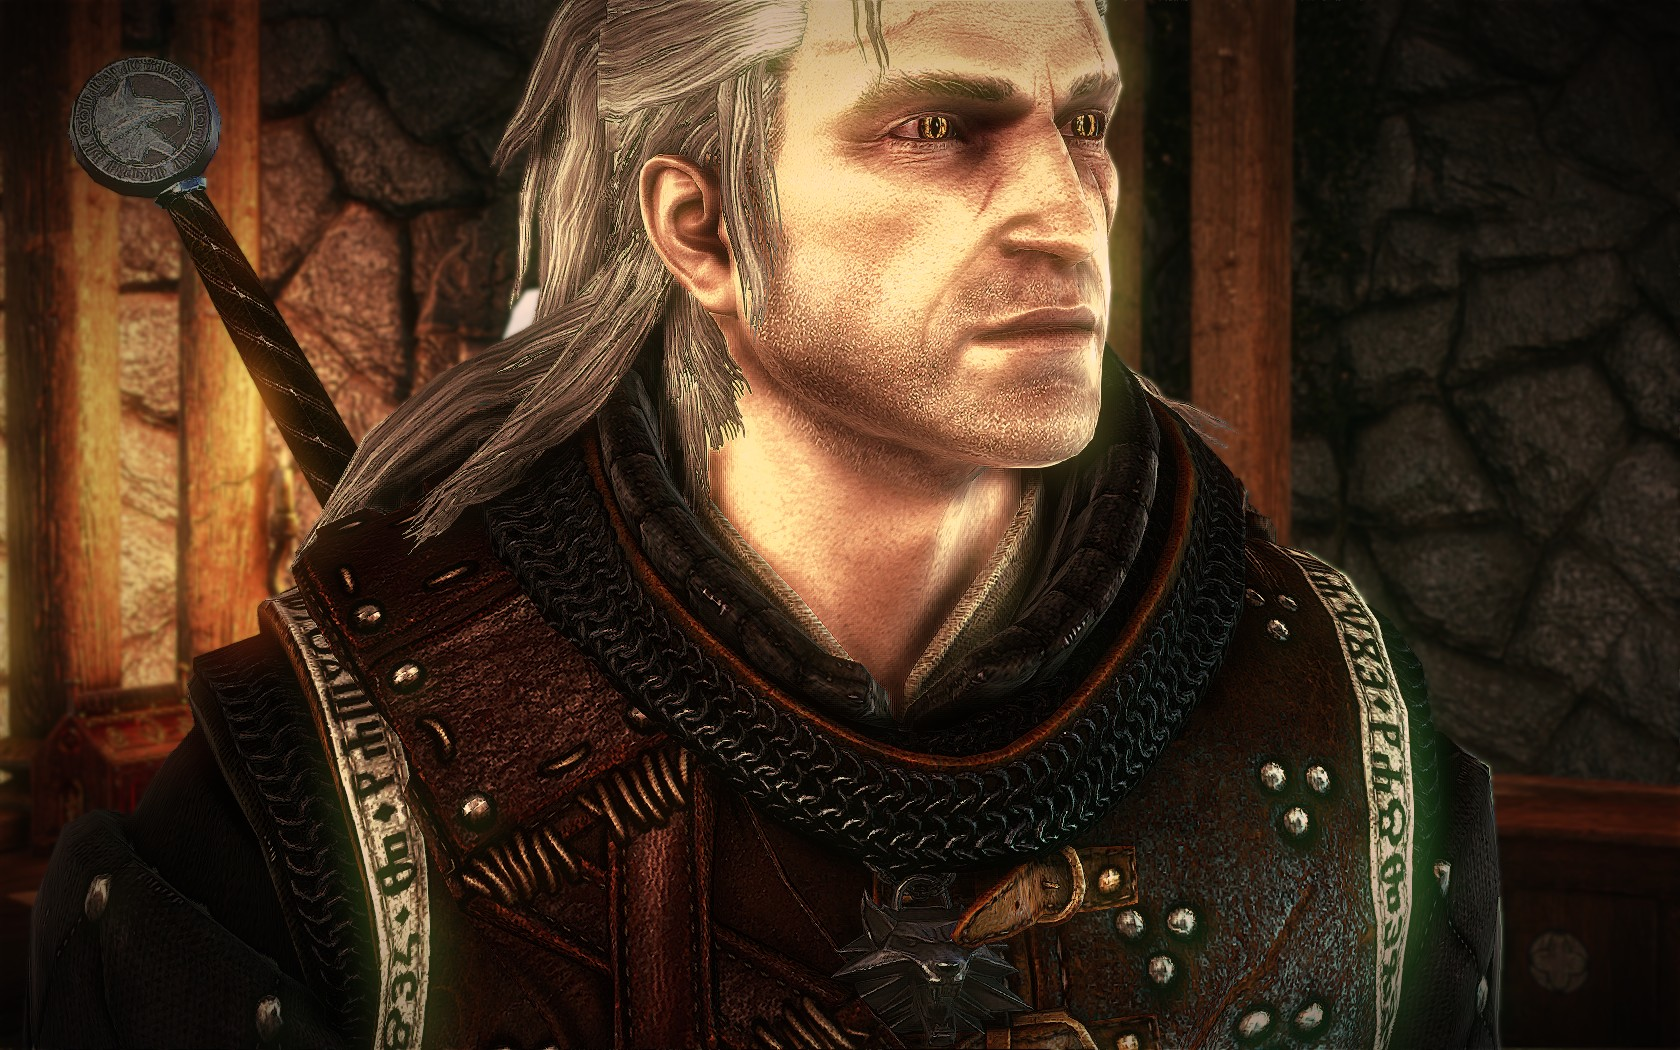 Witcher2 Geralt